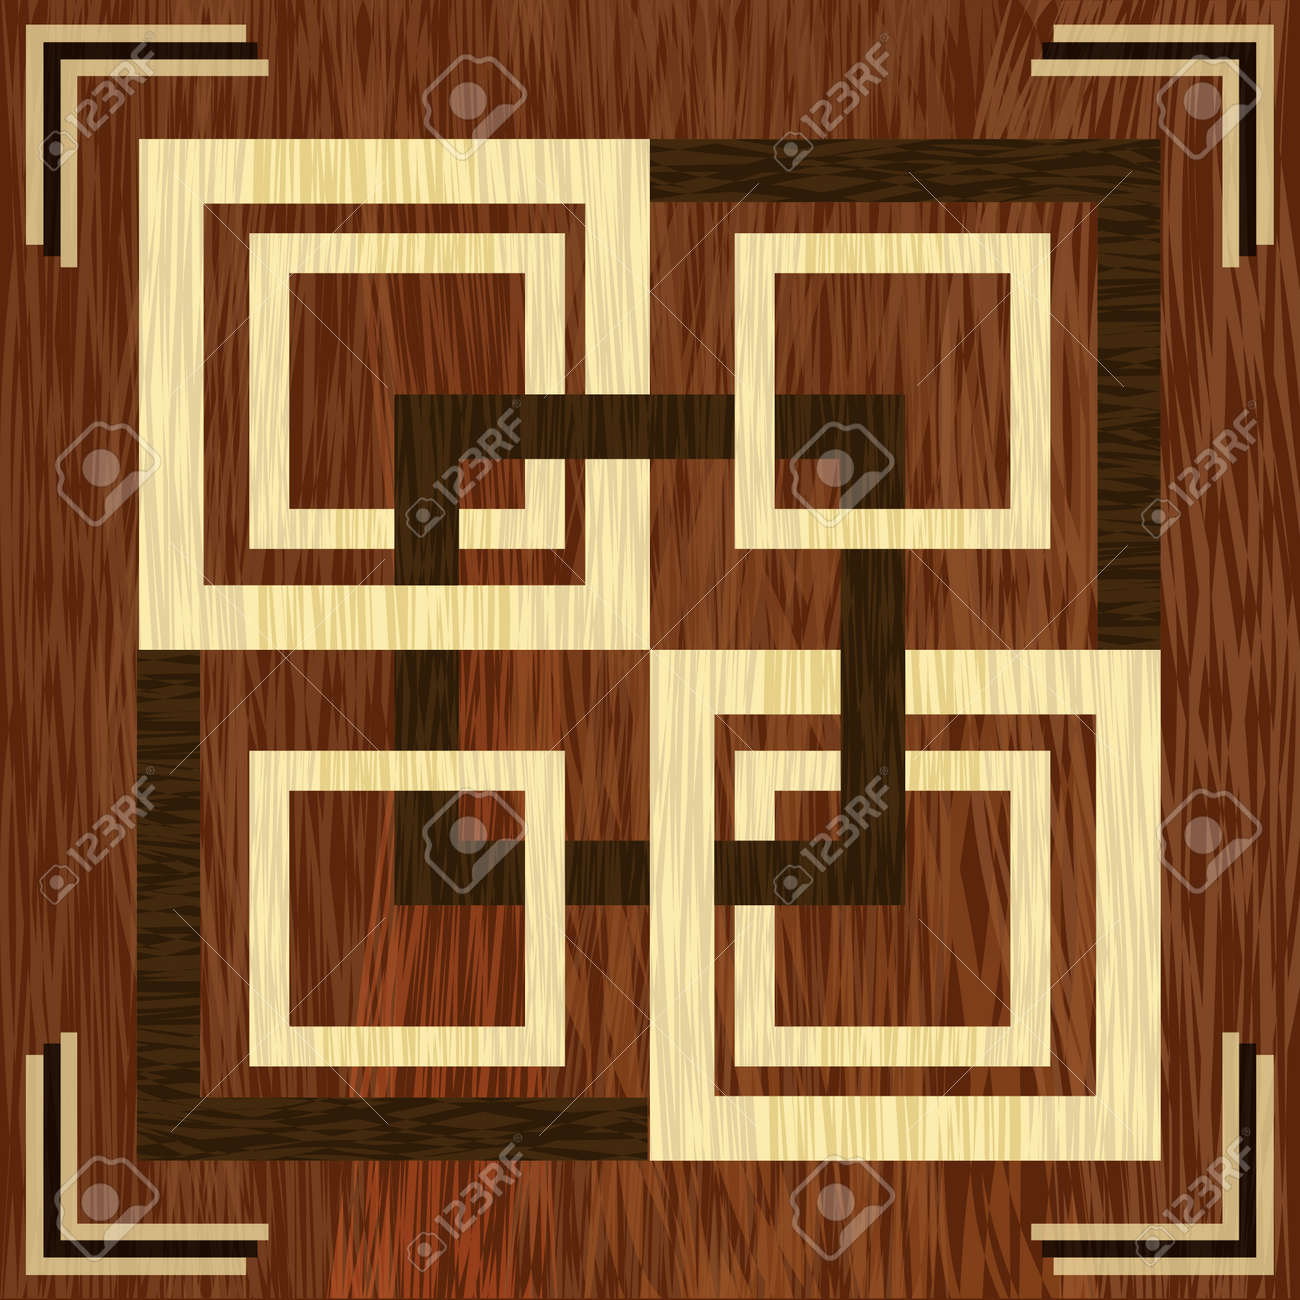 Wooden Square Inlay Light And Dark Wood Patterns Wooden Art